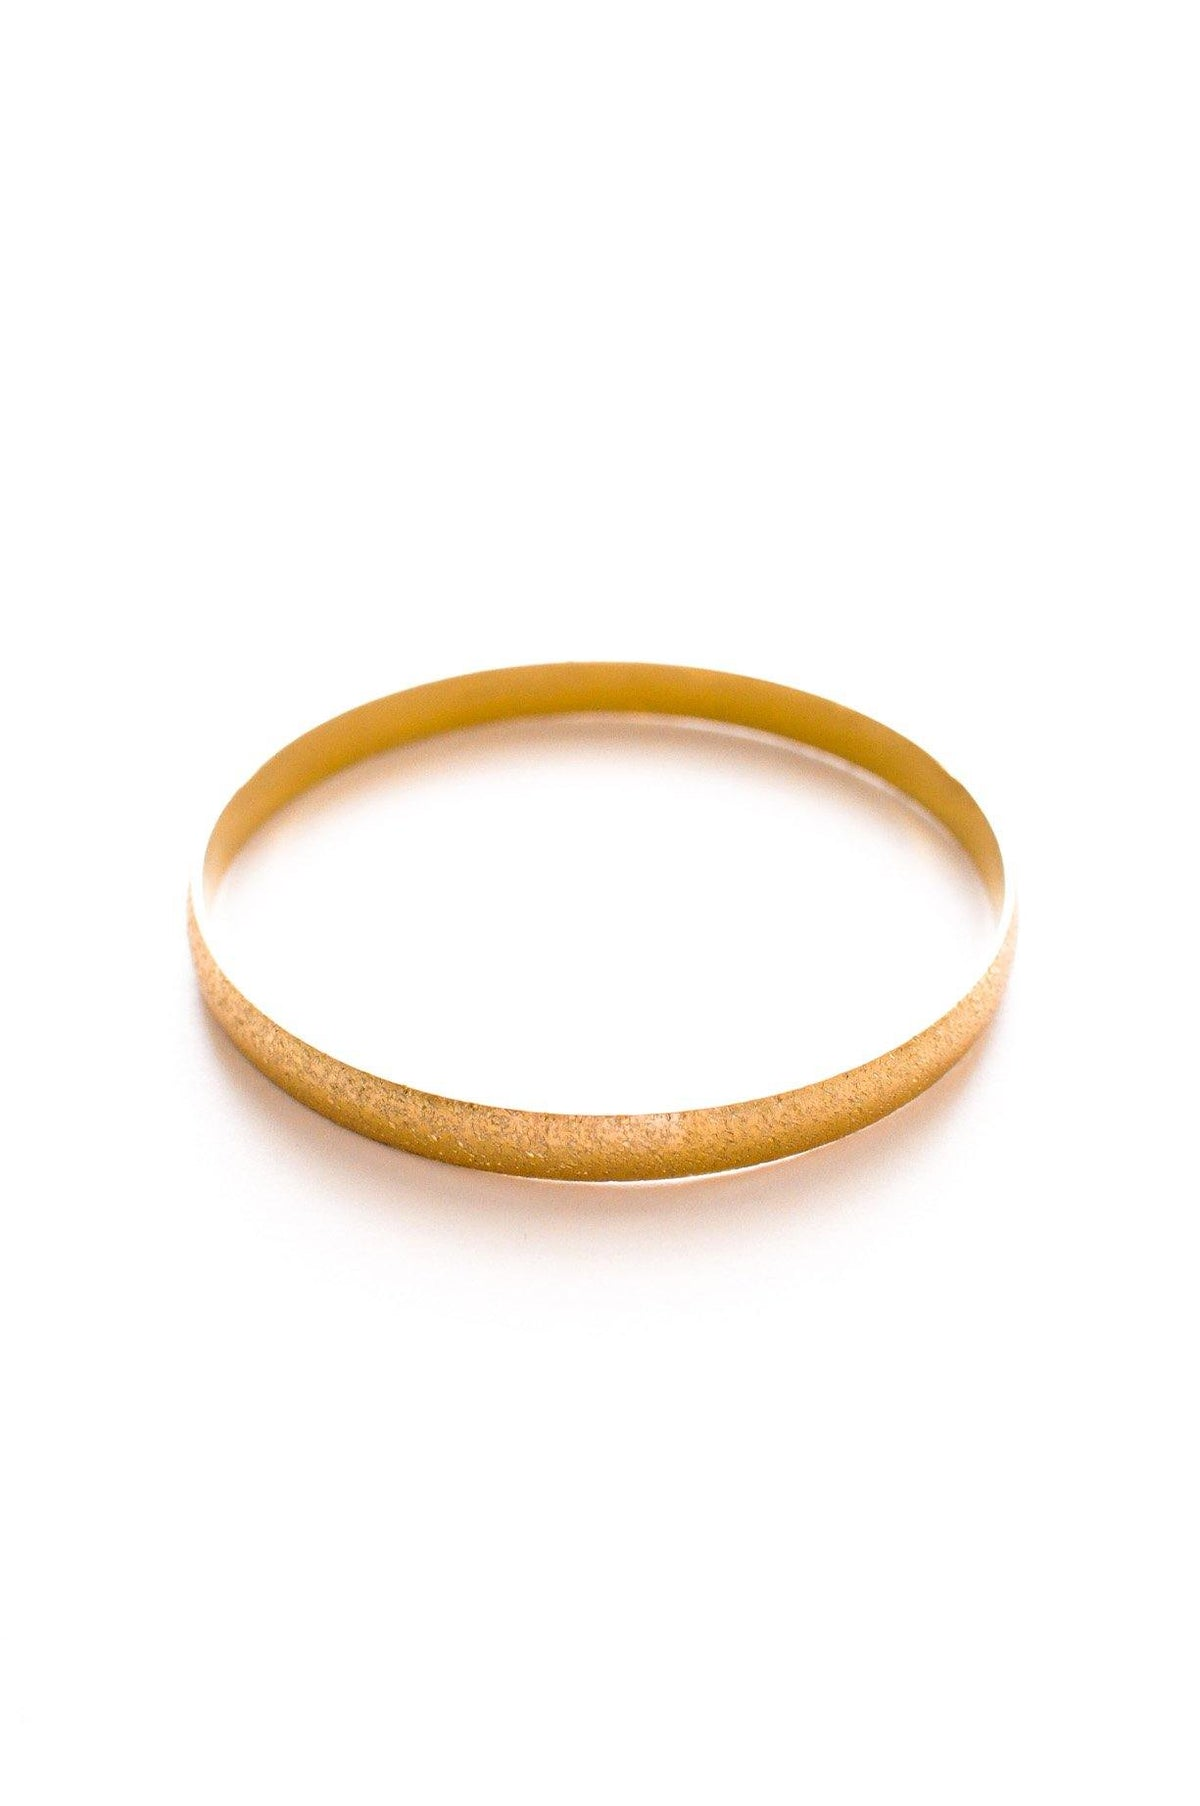 Vintage Napier etched gold classic bangle from Sweet & Spark.